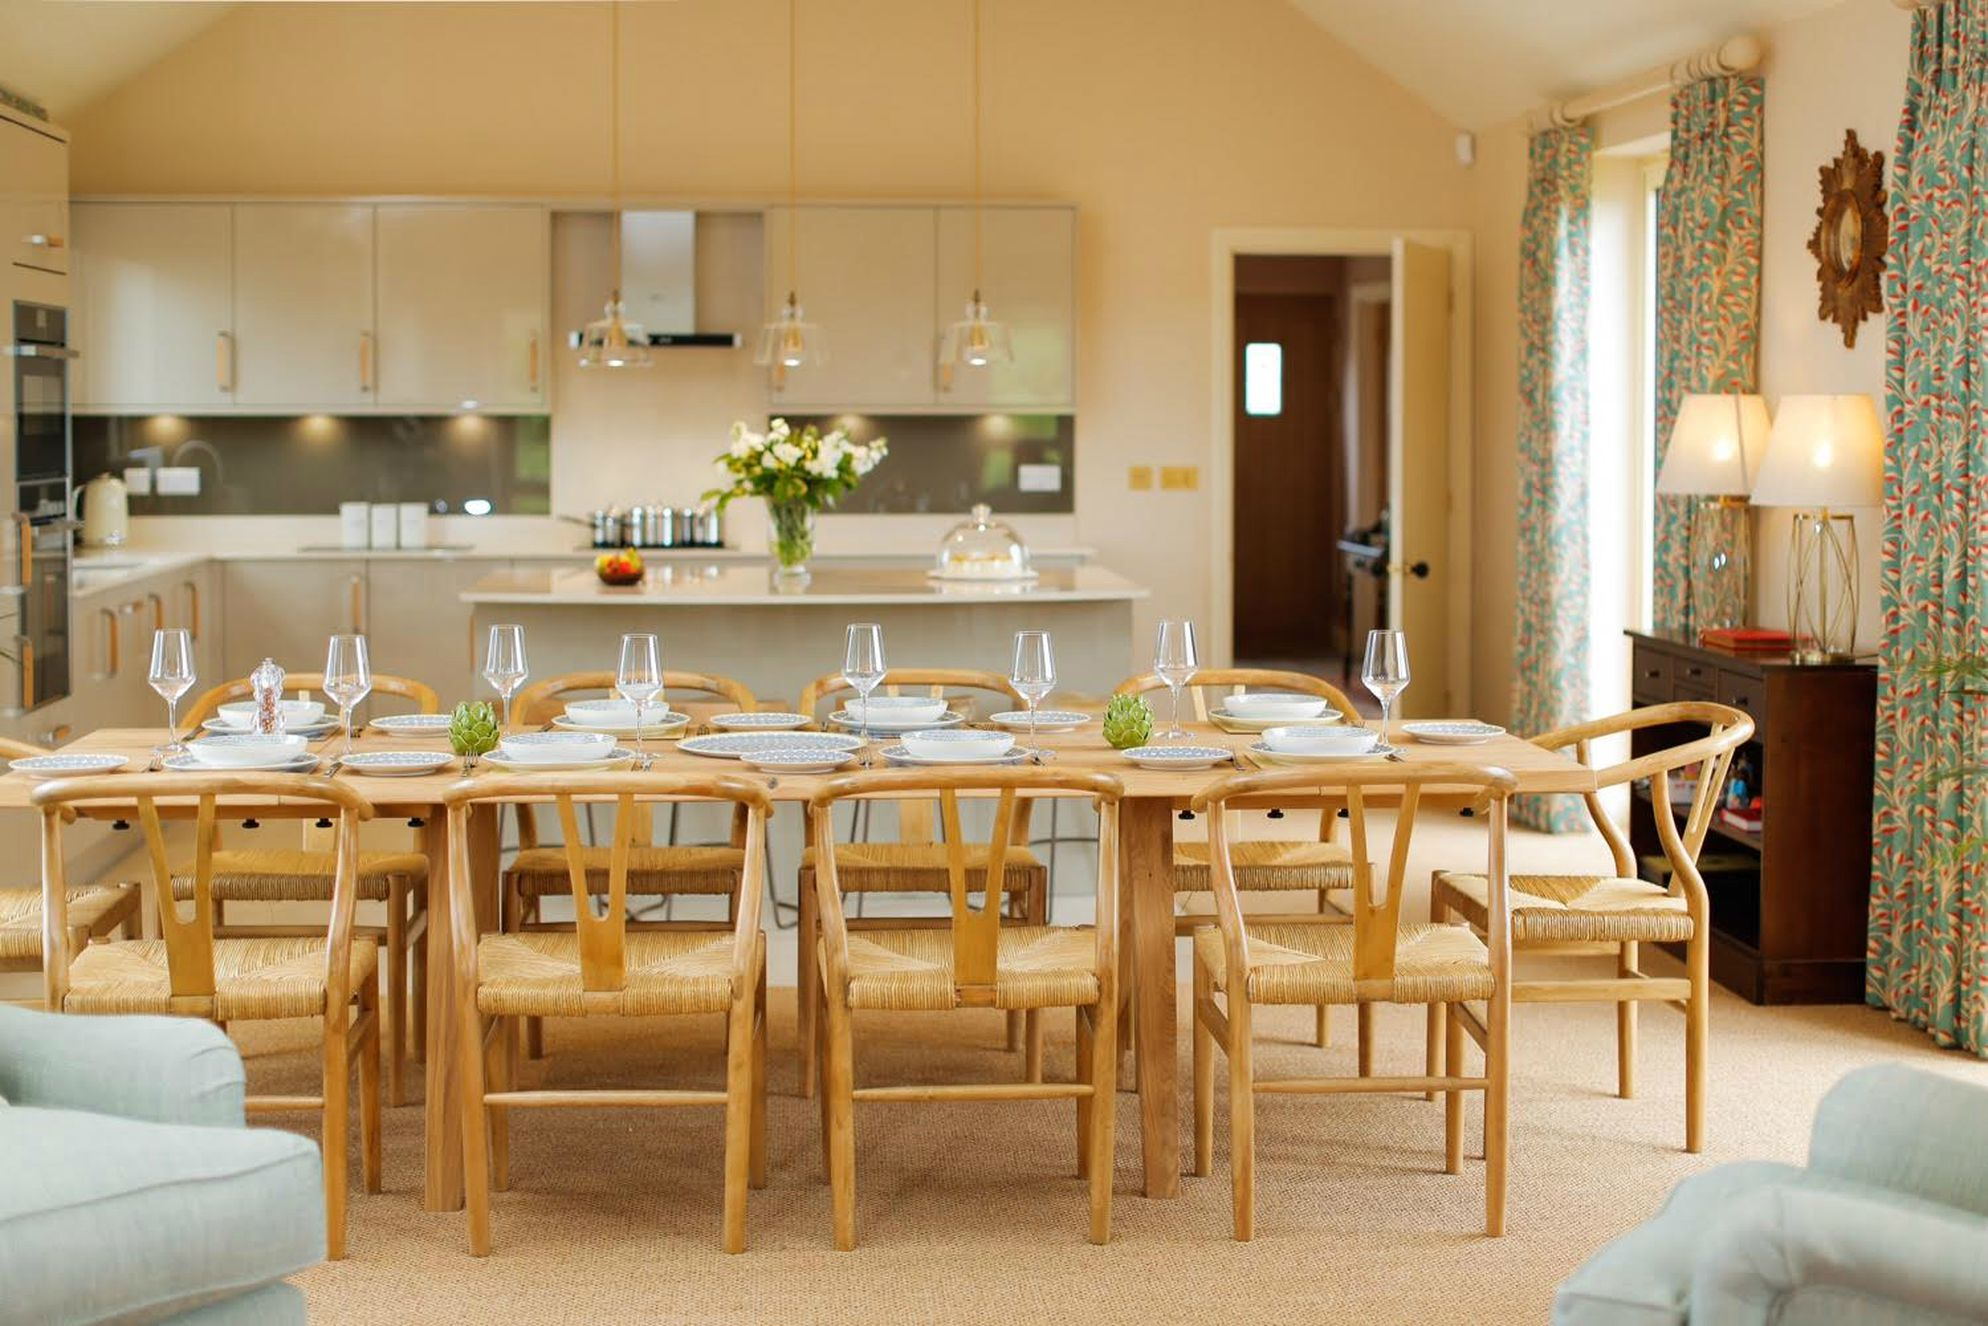 Huge dining table in Teal House Learchild with open plan kitchen behind